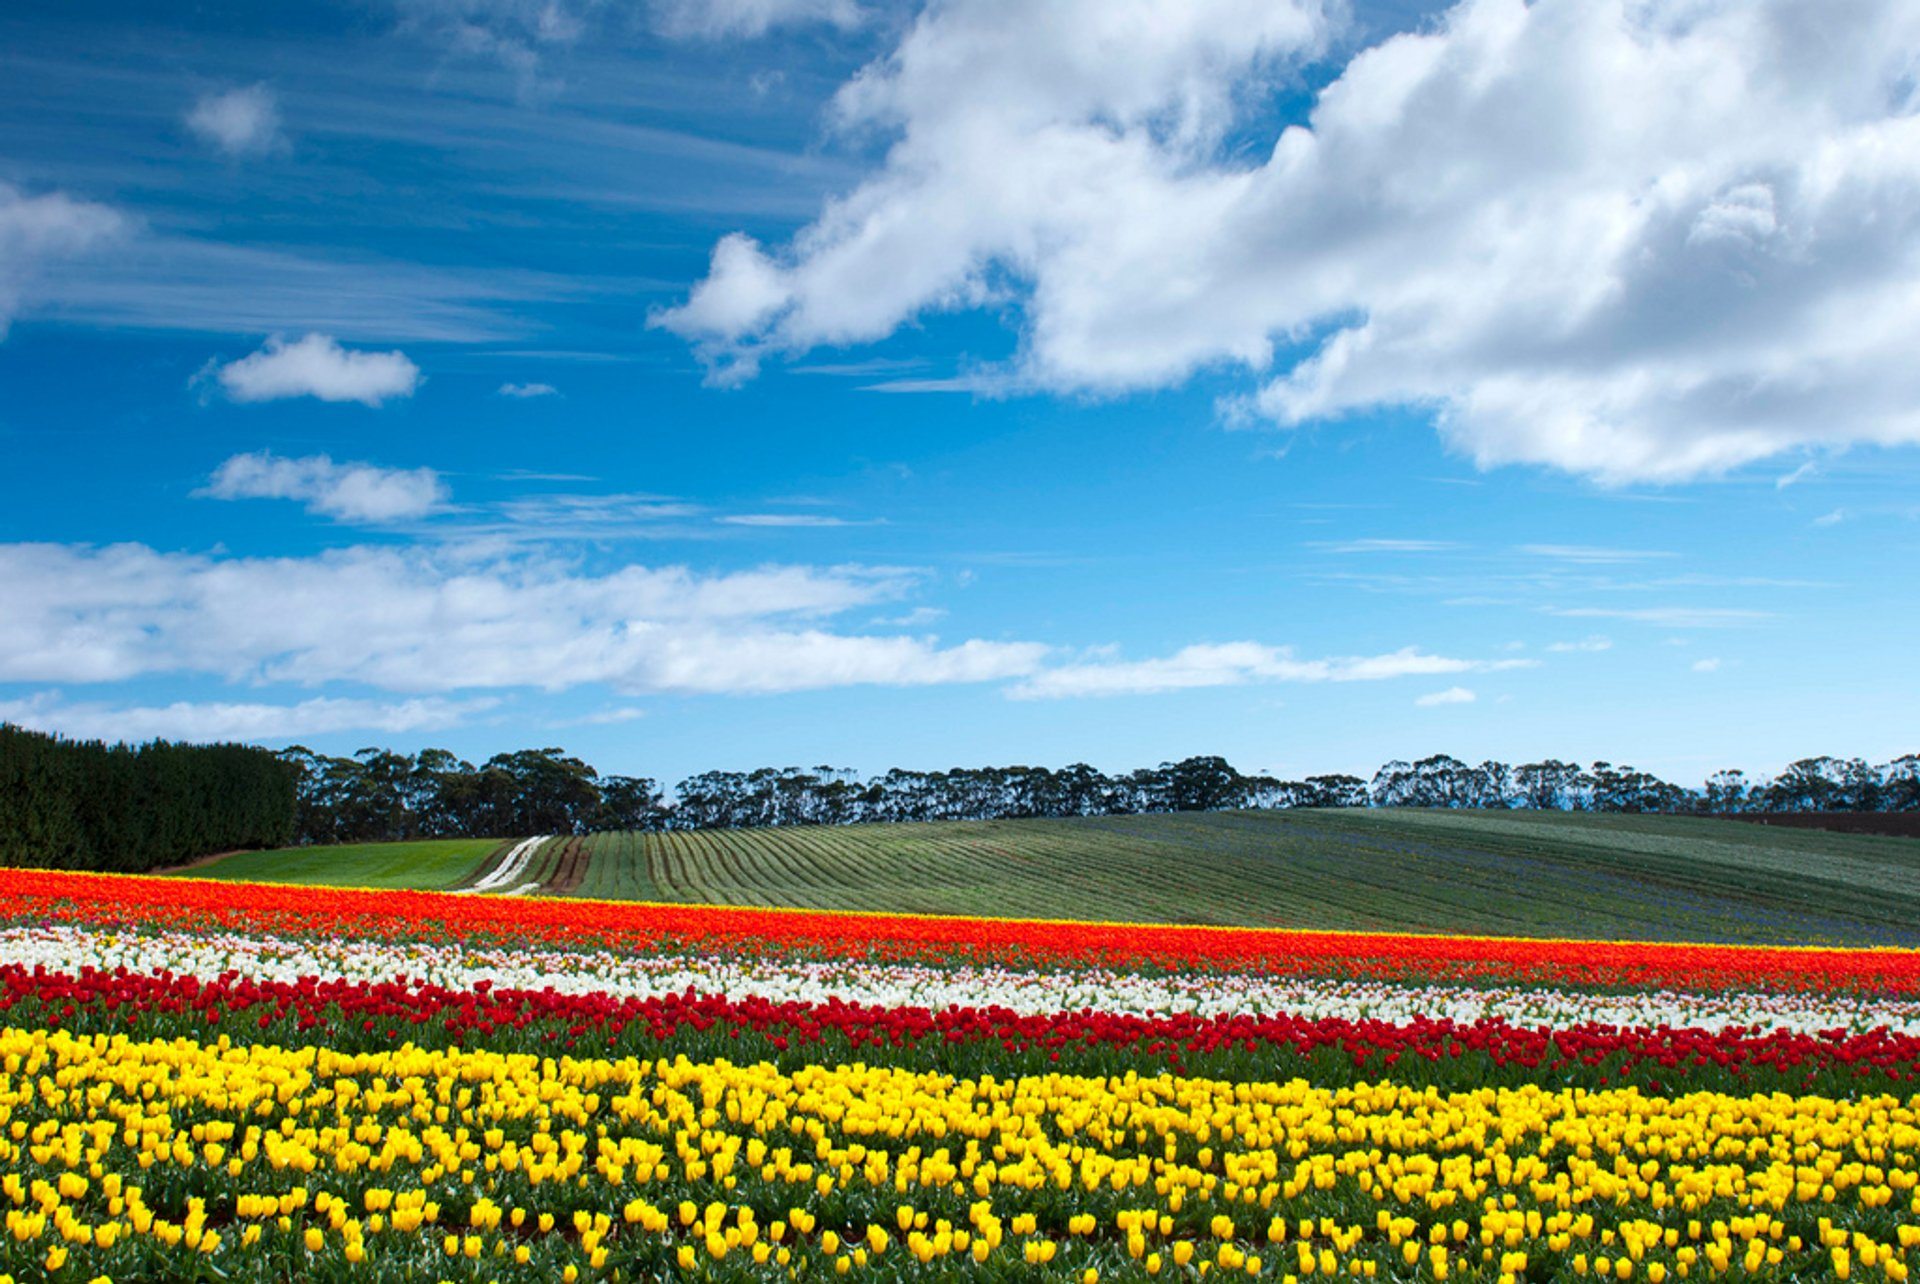 Blooming Tulips in Tasmania 2020 - Best Time